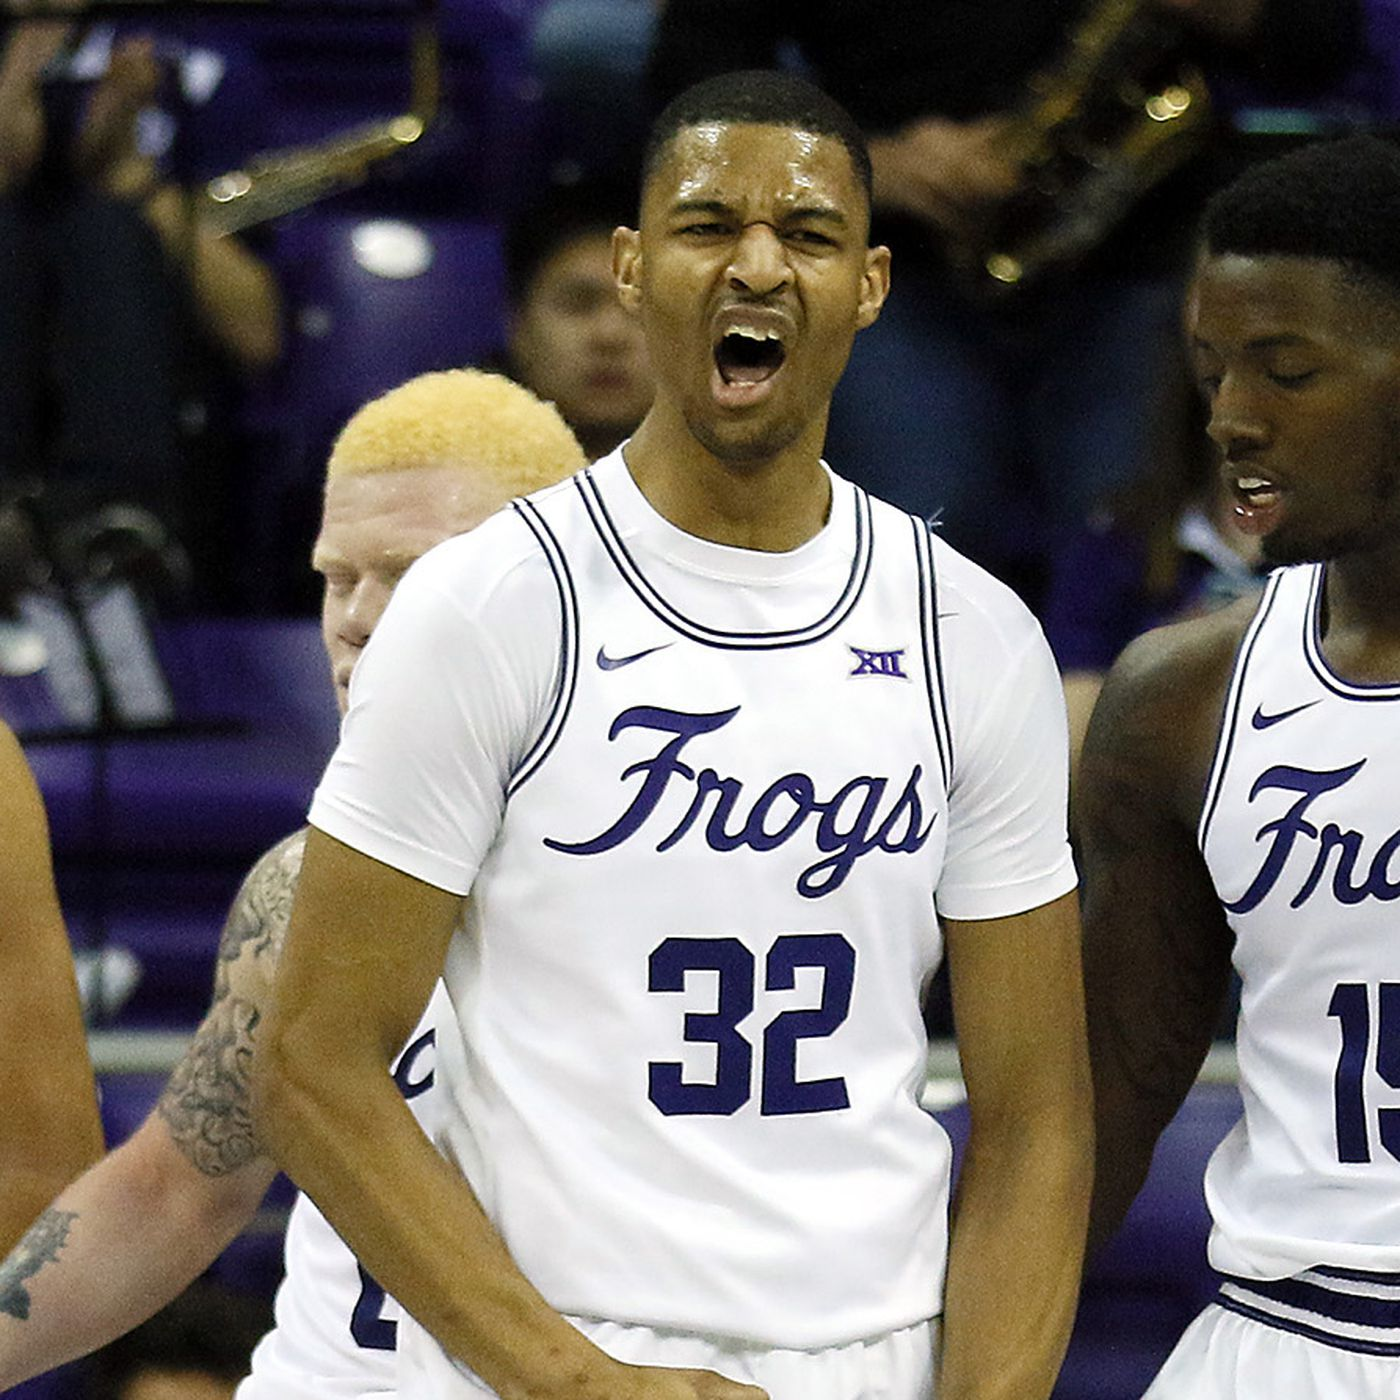 07b6198b8a2 Not Done Yet: TCU Basketball Heading to the NIT - Frogs O' War